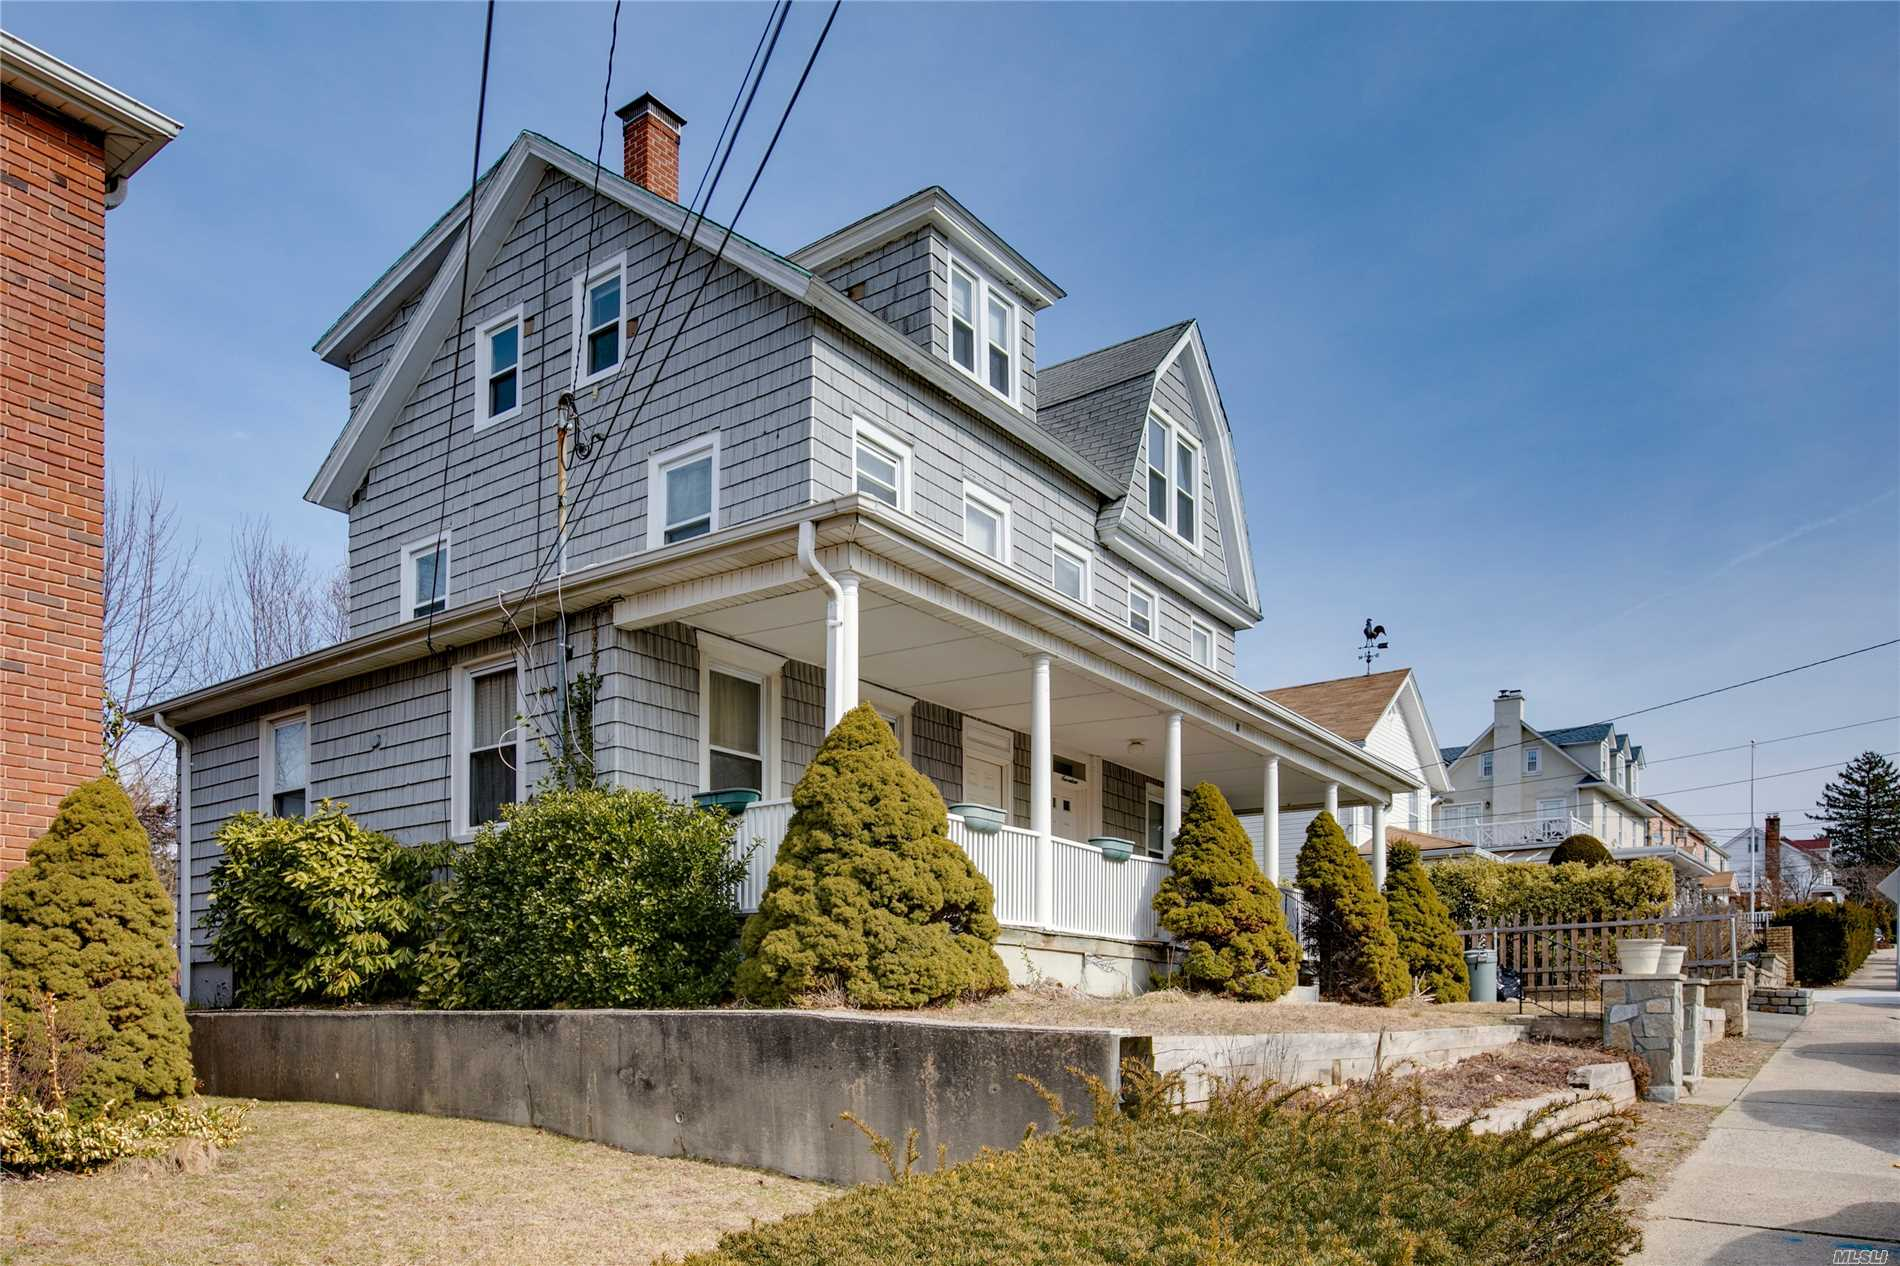 Arts And Crafts Two Family 19th Century Home With Charming Rocking Chair Porch. This 2 Family Is Located Close To Town And Harbor And Manhasset Bay. Beautiful Views From Top Floor. Needs TLC. Can Be A Great Investment Or Restored Back To A Grand One Family Home. Water views from 3rd floor